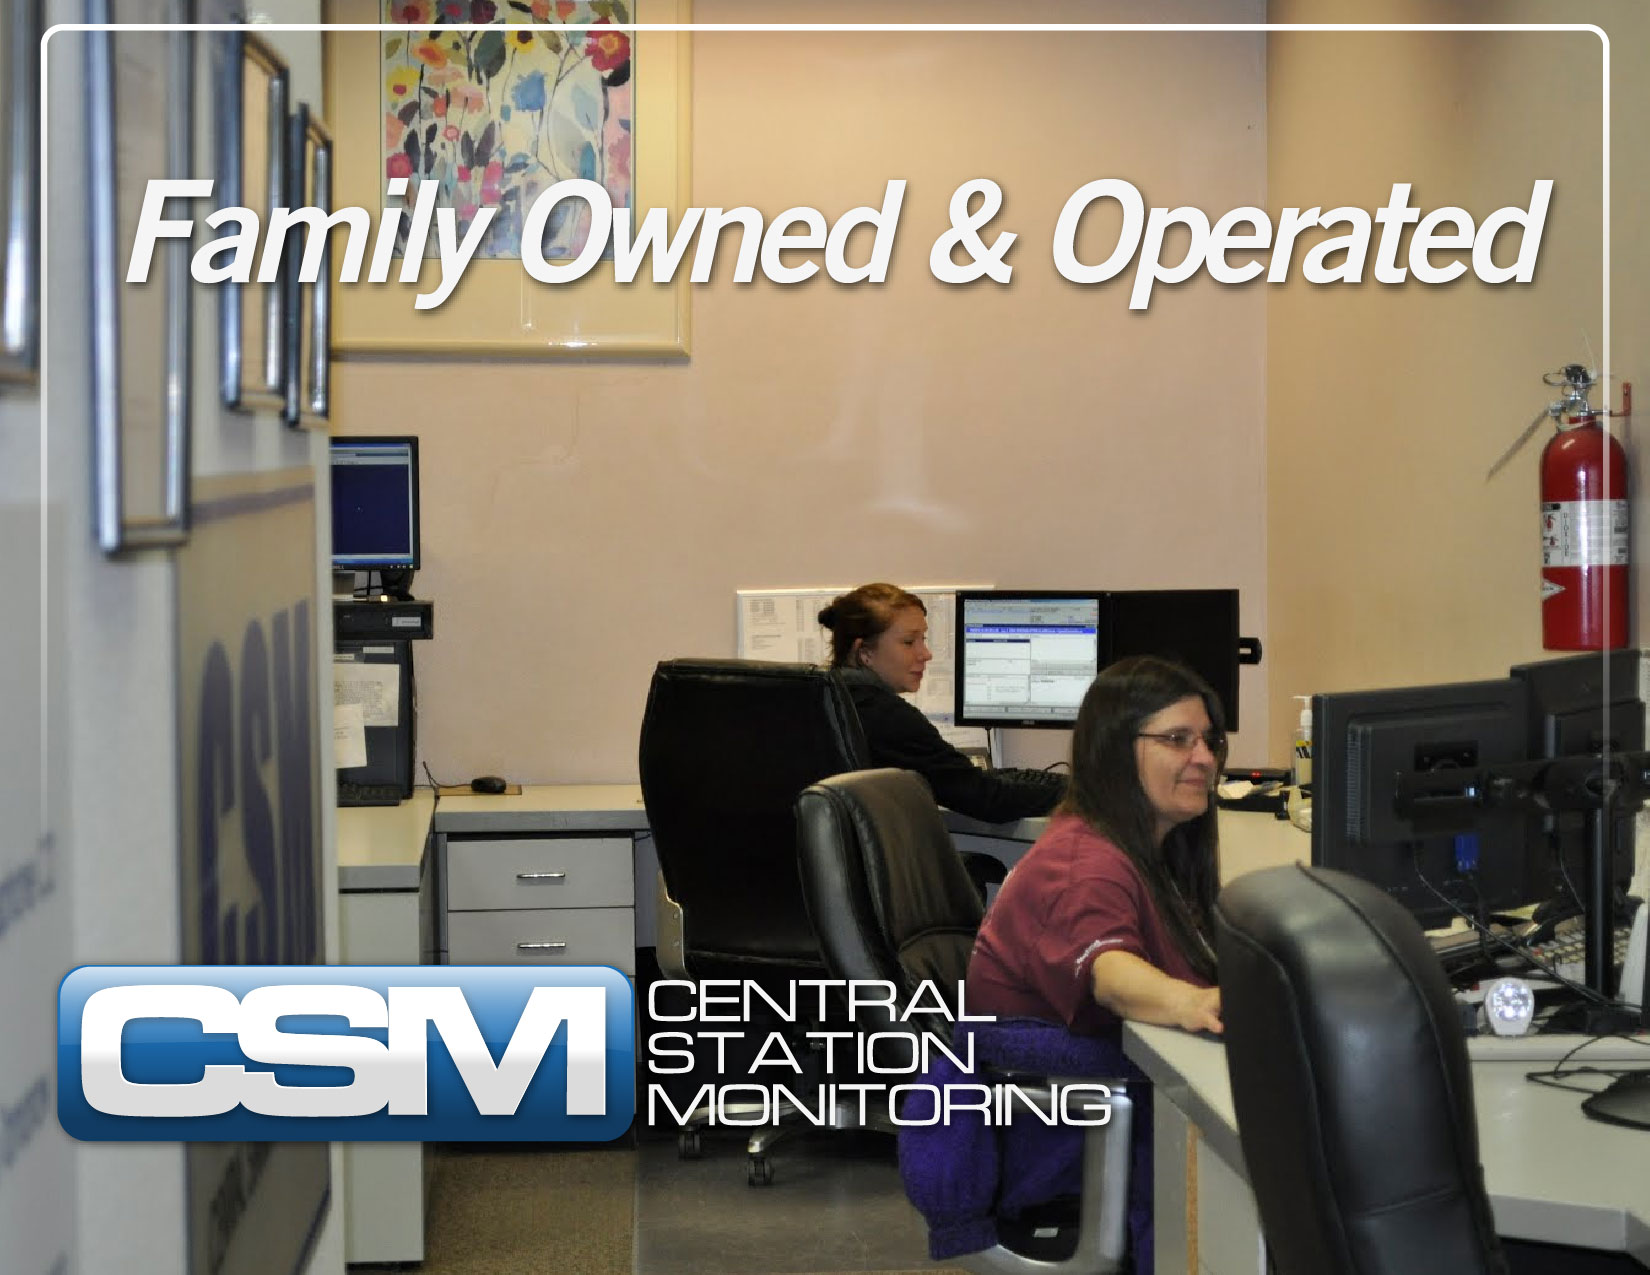 Central Monitoring Station : Contact us csm central station monitoring